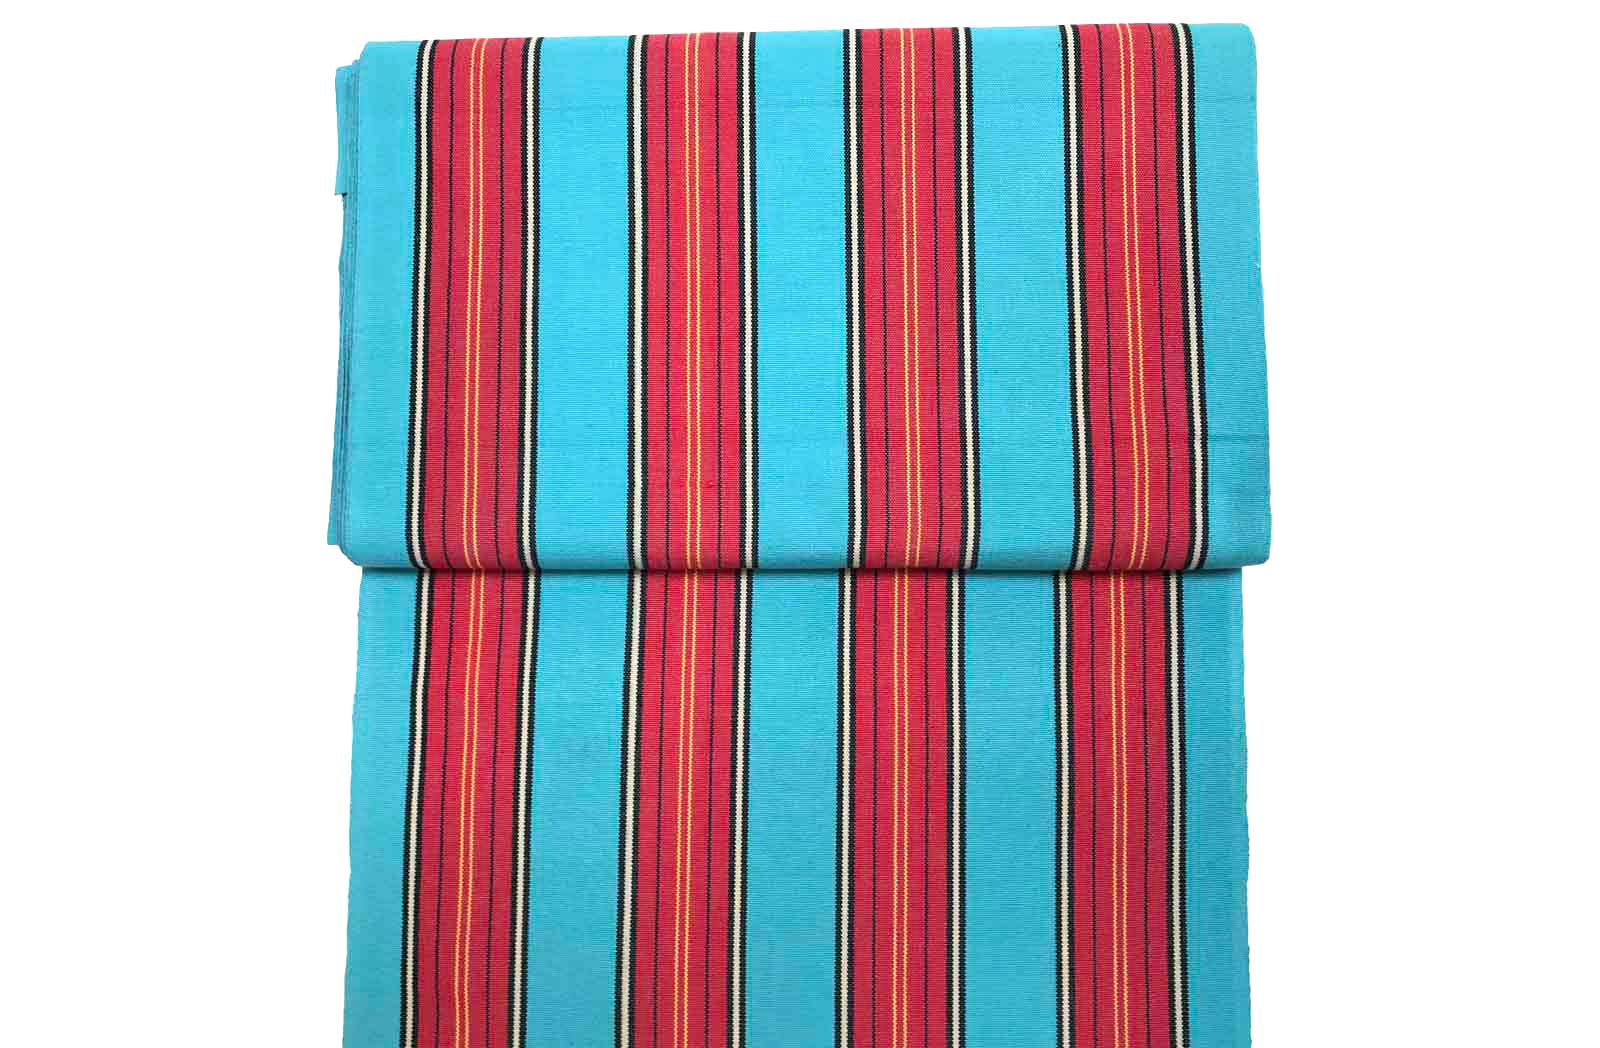 Light blue and red stripe deckchair fabric